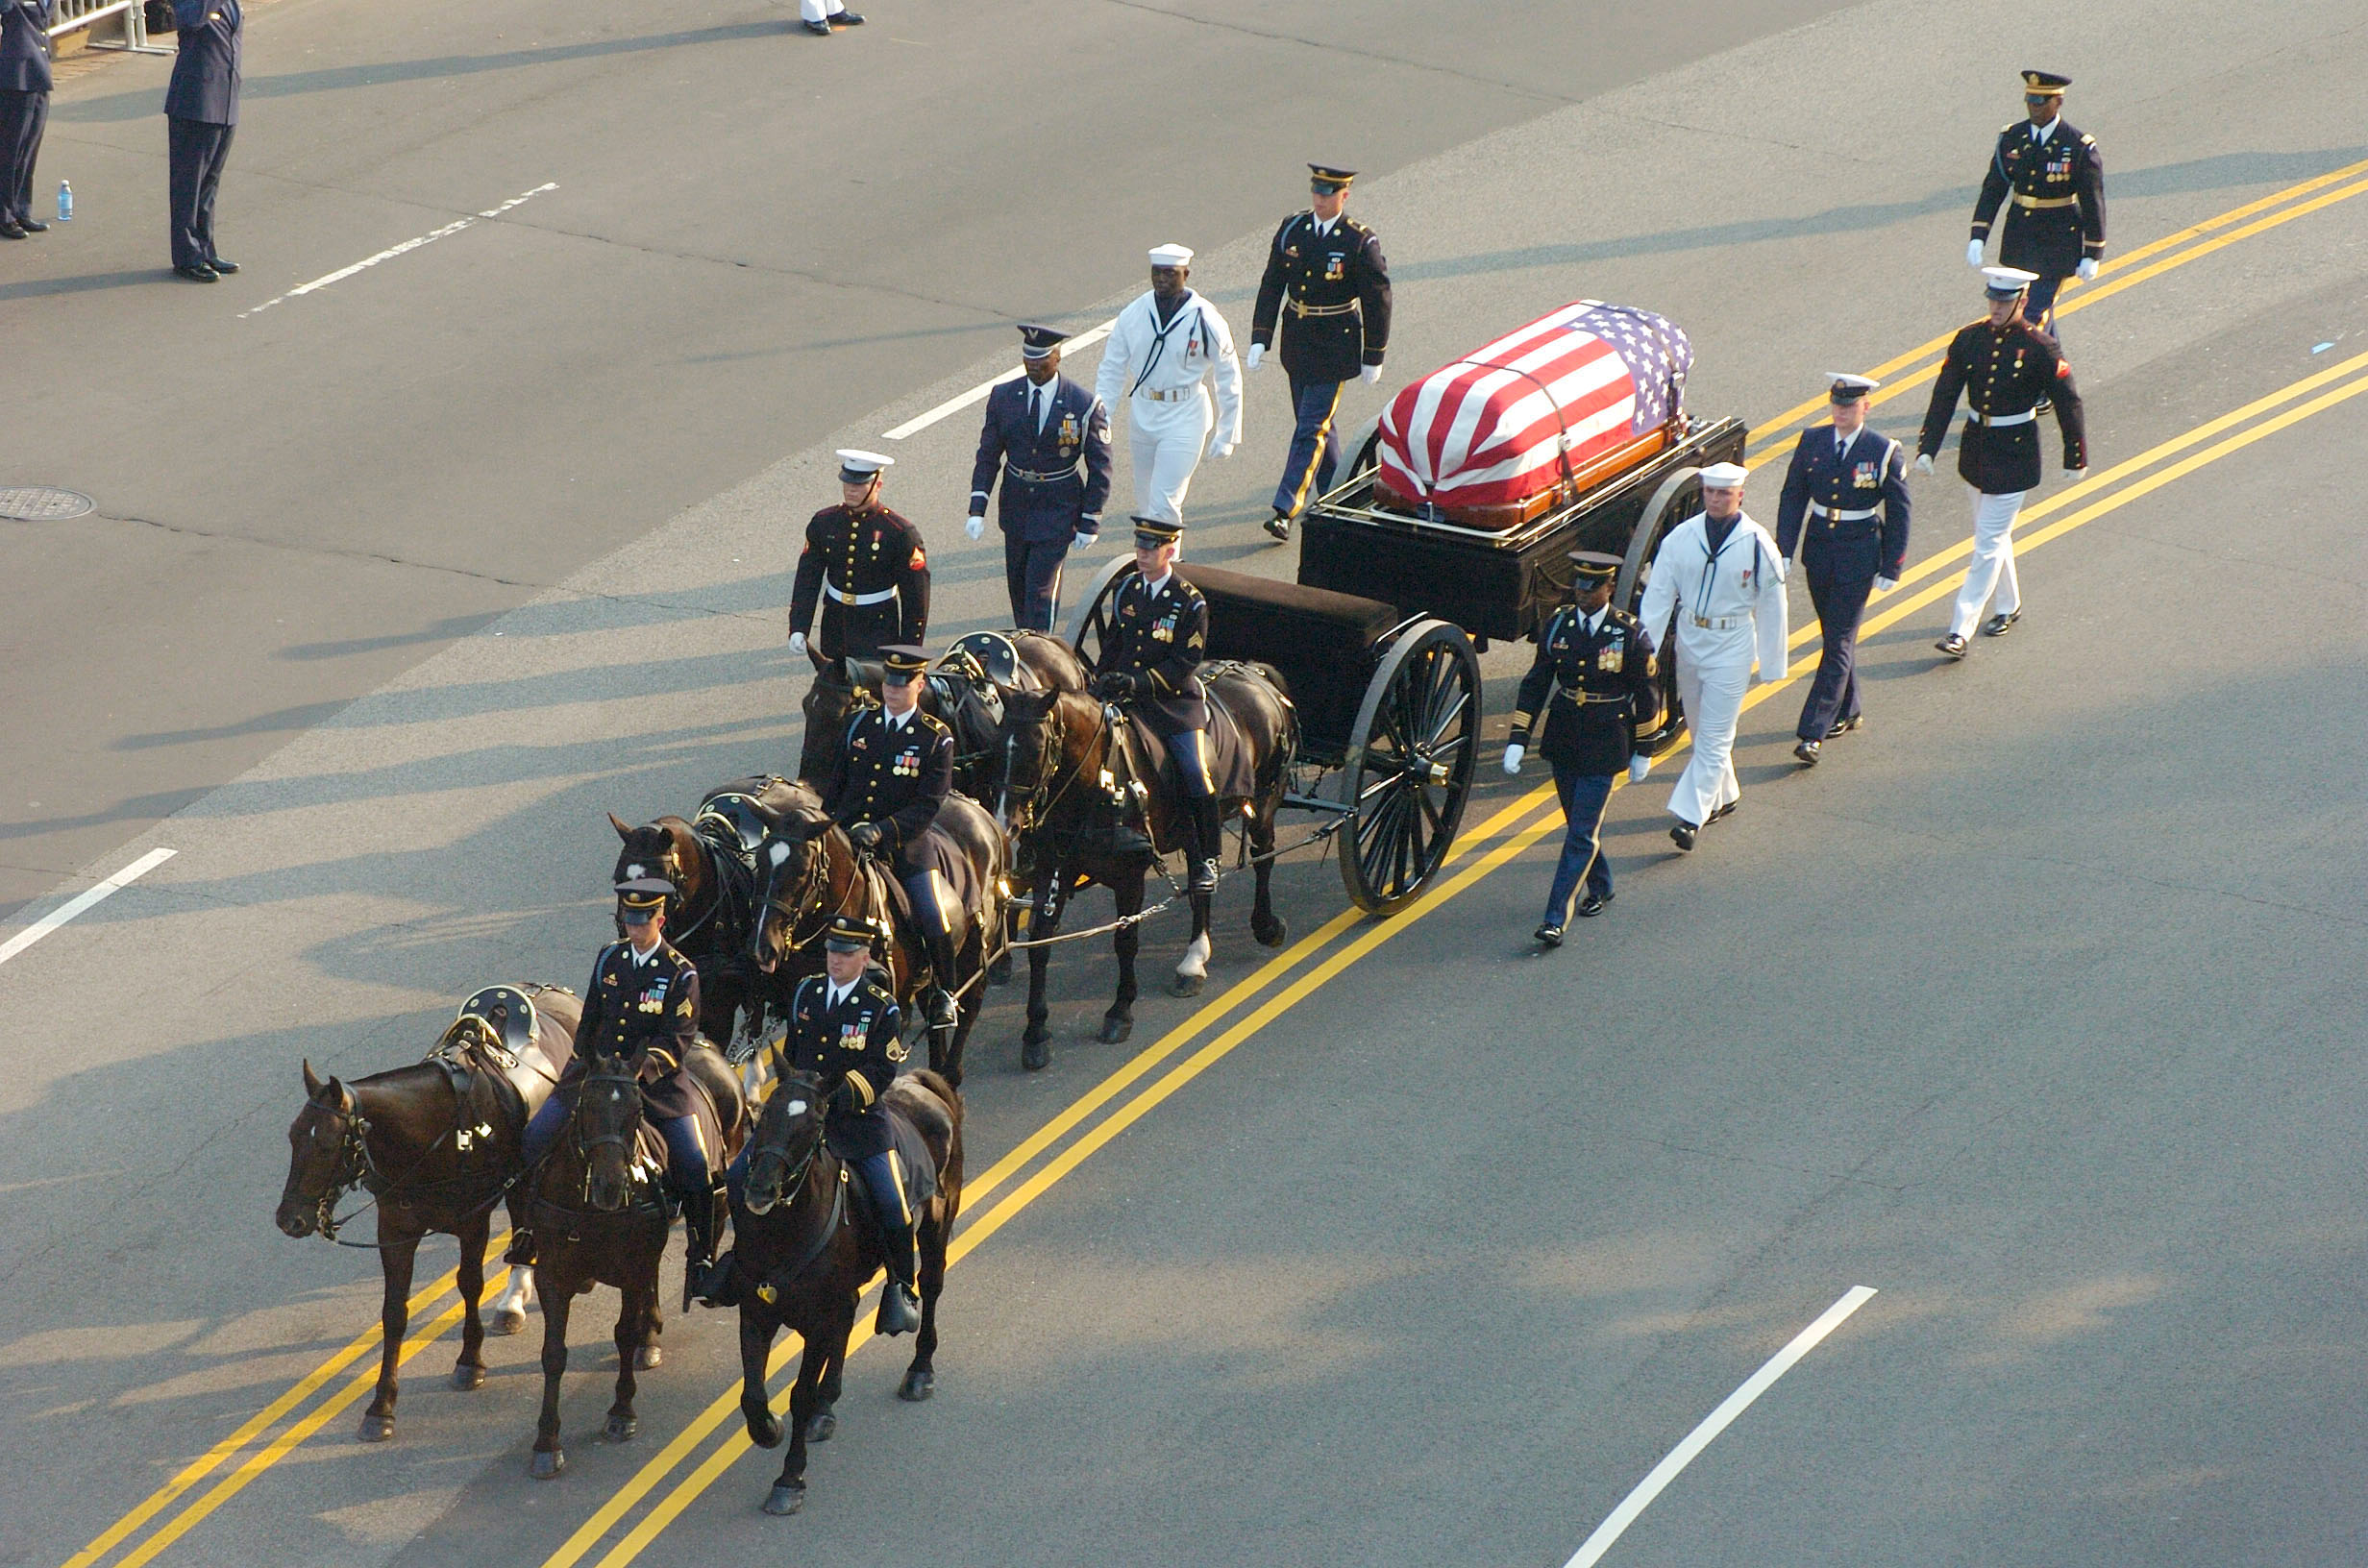 Members of a joint honor guard escort the Army's 3rd U.S. Infantry Regiment Old Guard Caisson Platoon bearing former President Ronald Reagan's flag draped casket making its way down Constitution Ave. during President Reagan's funeral procession from the White House to the U.S. Capitol, Washington, D.C, June 9, 2004